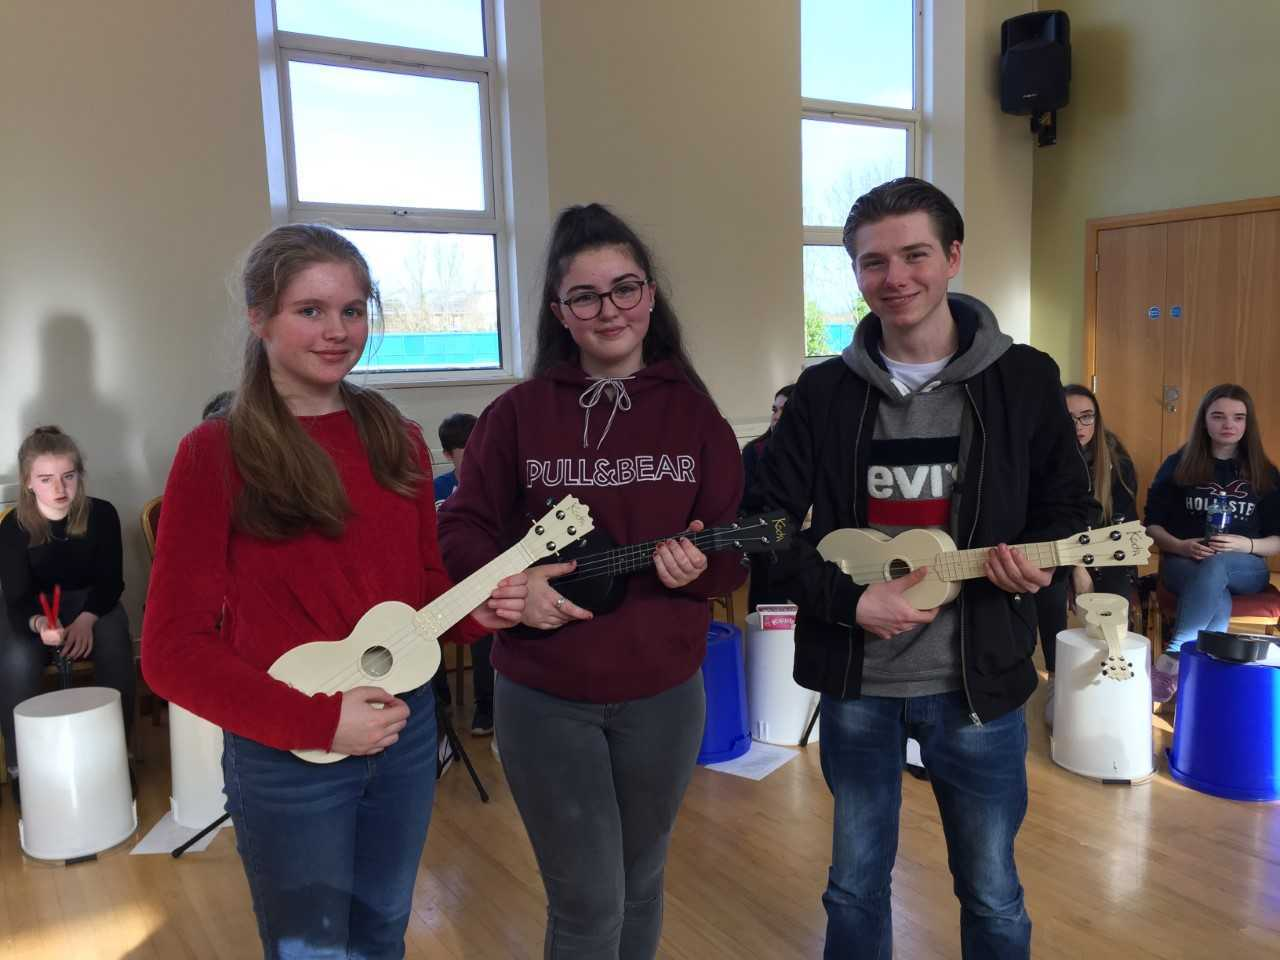 Darcey Pancott, Grainne Reynolds and Marc Hennessy who performed as part of the Ukes4Youth ukulele orchestra.